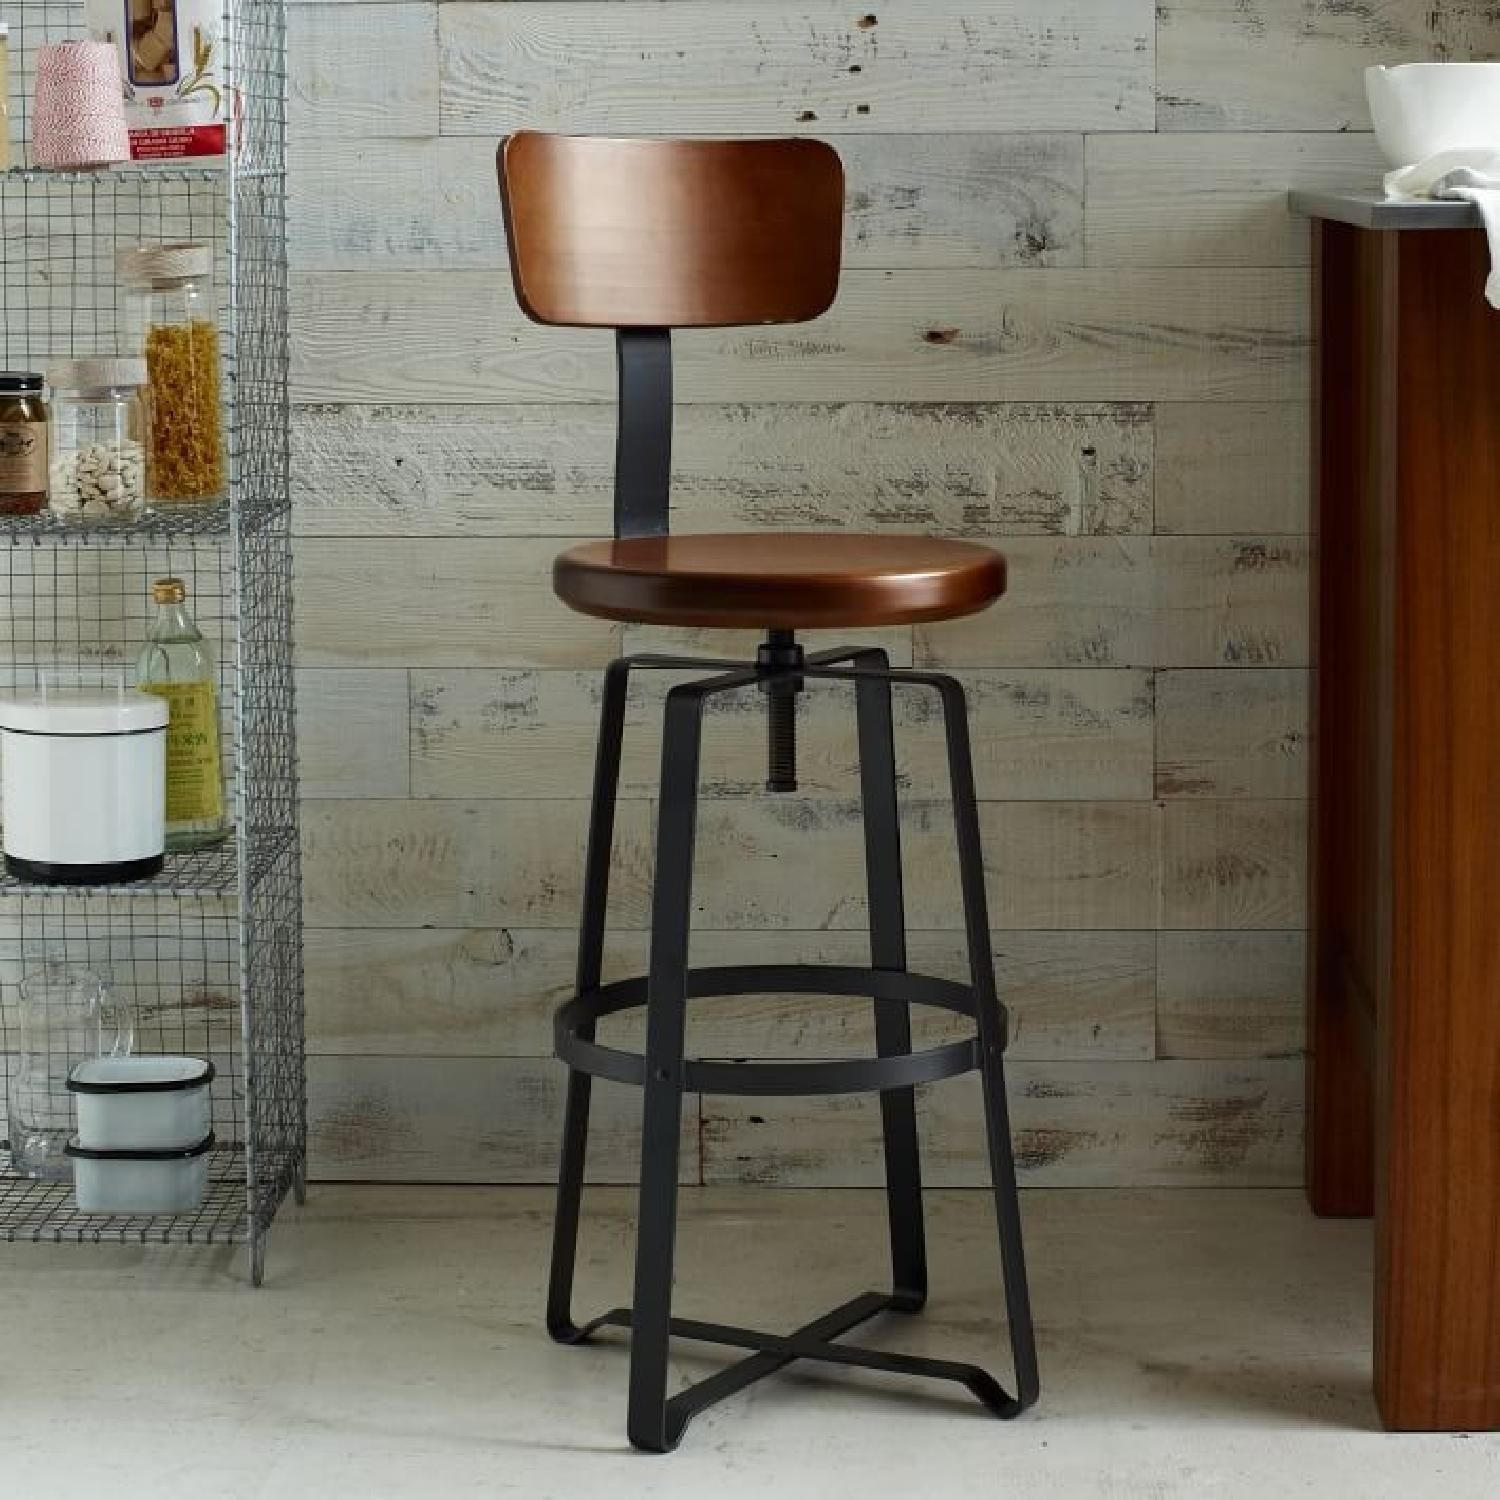 Adjustable Industrial Stool With Back